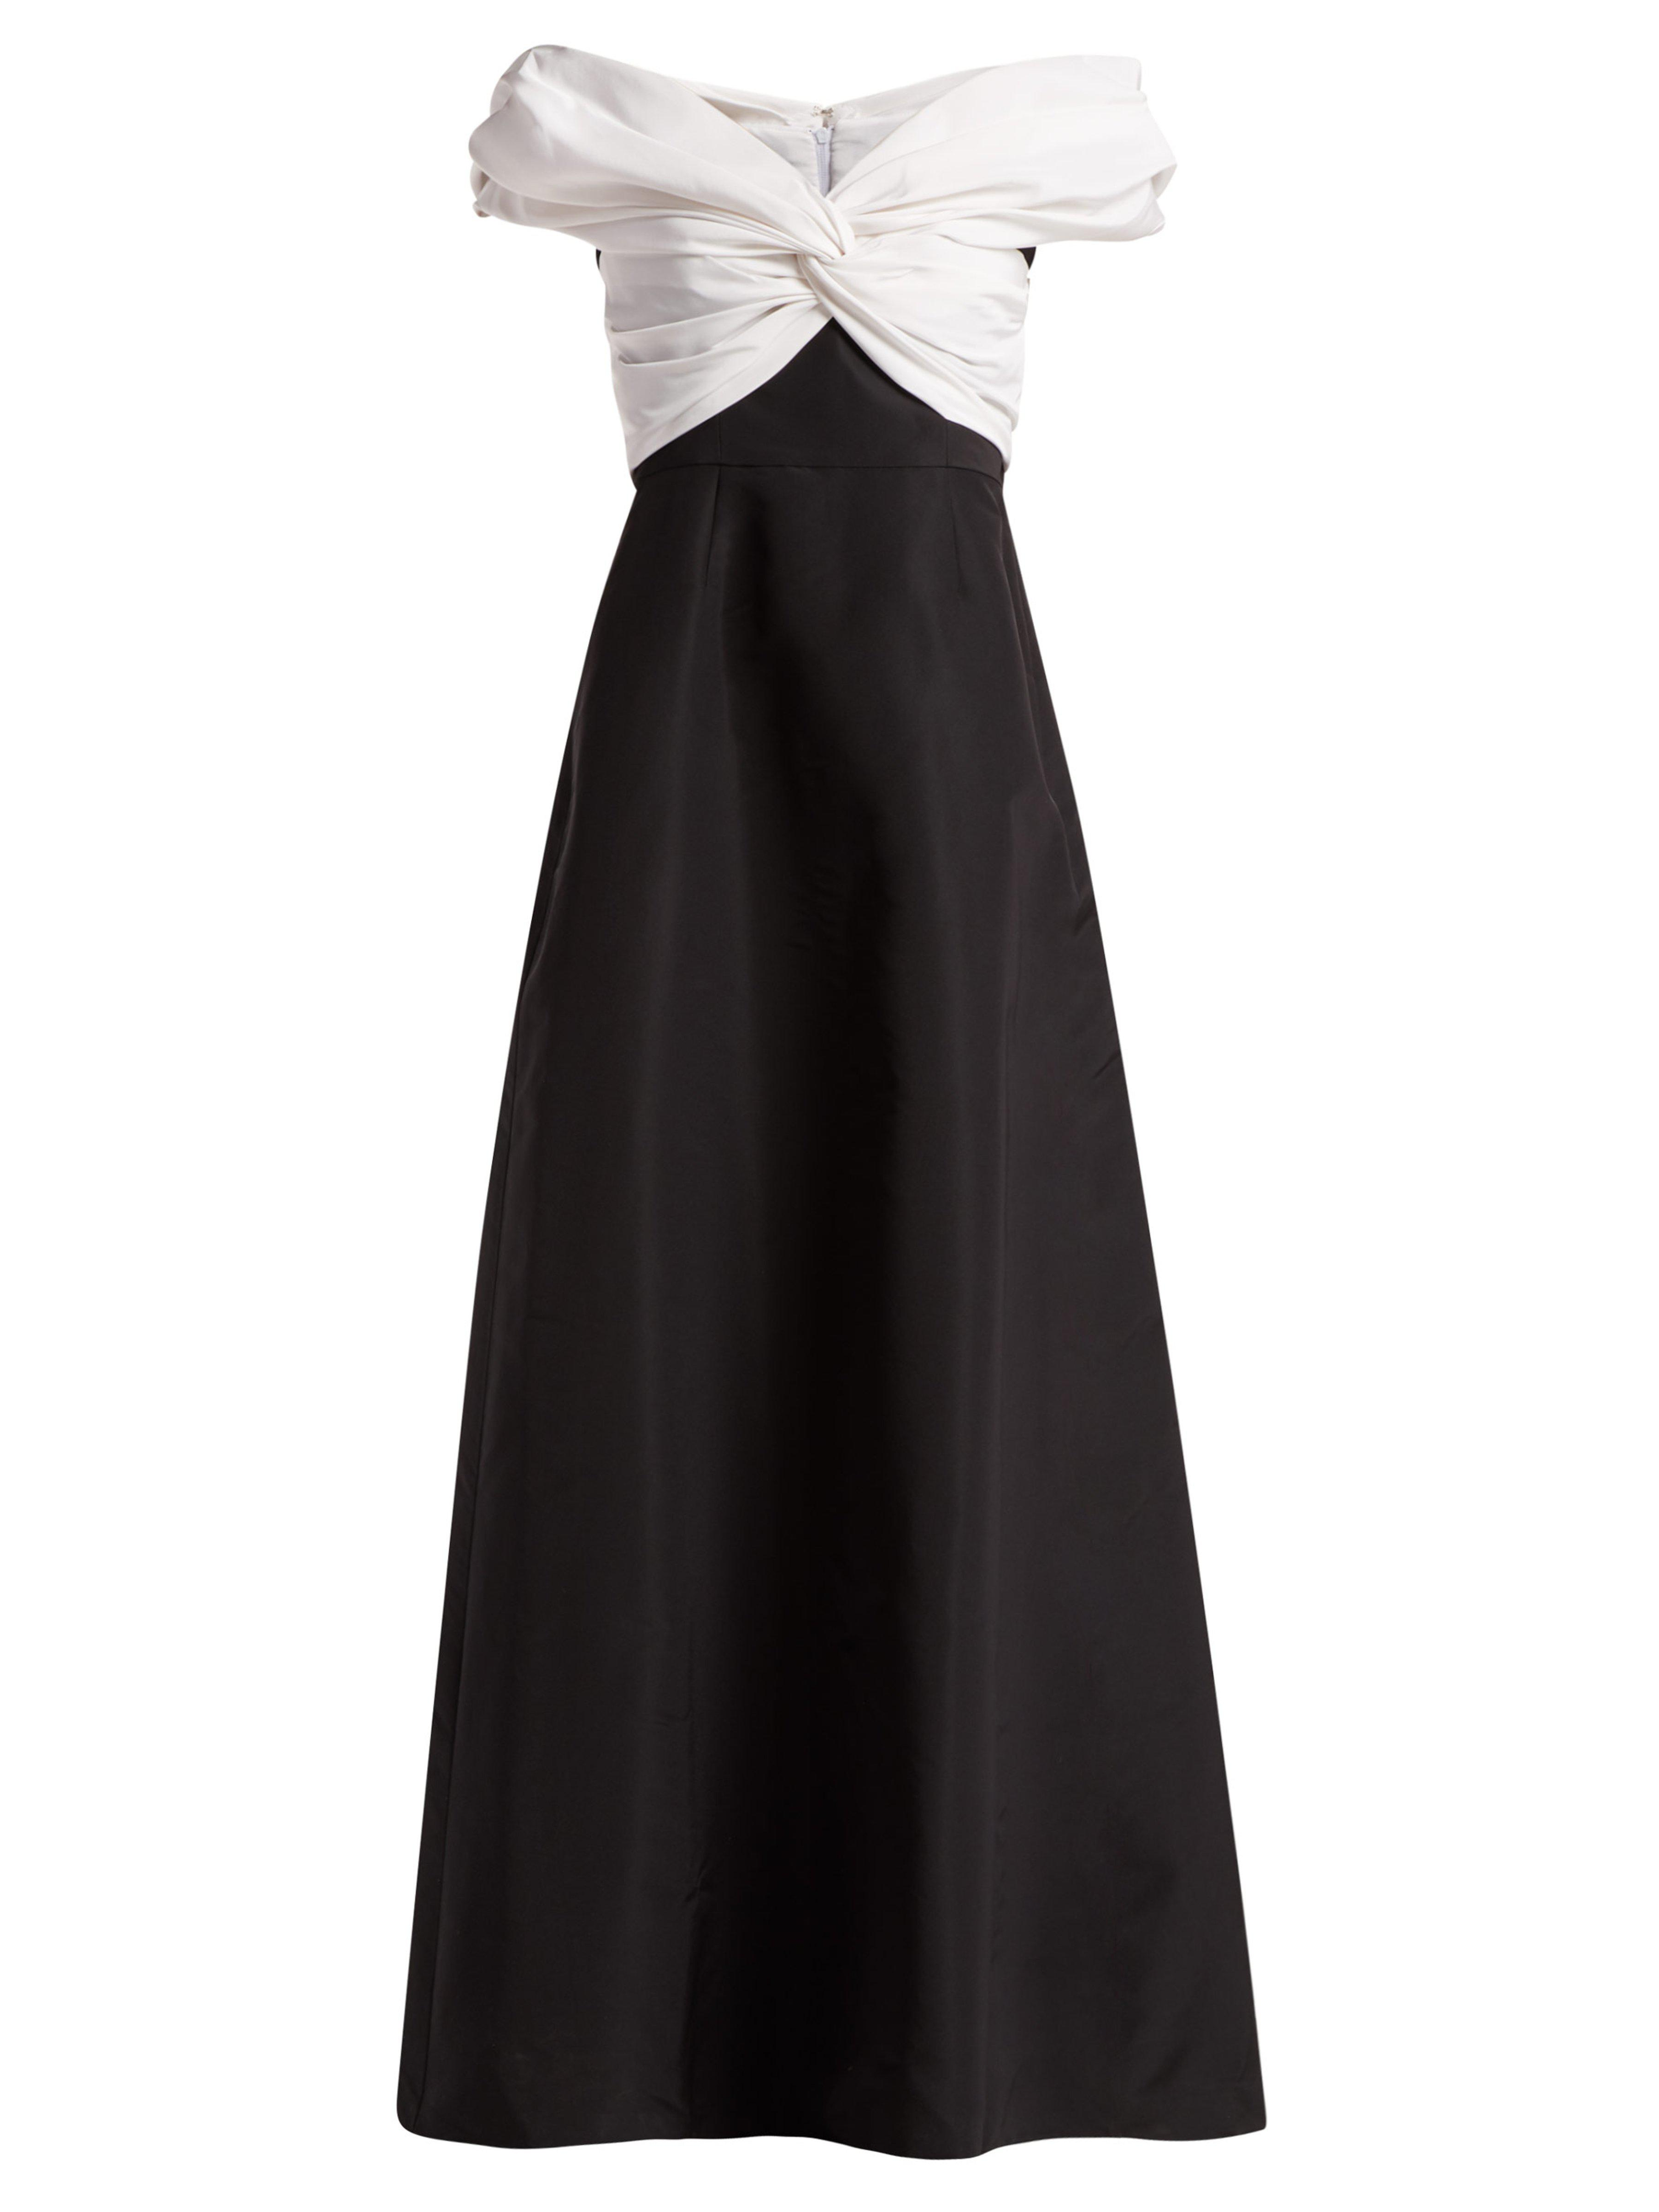 045e7944f76a Carolina Herrera Off-the-shoulder Gathered Silk-faille Gown in Black ...